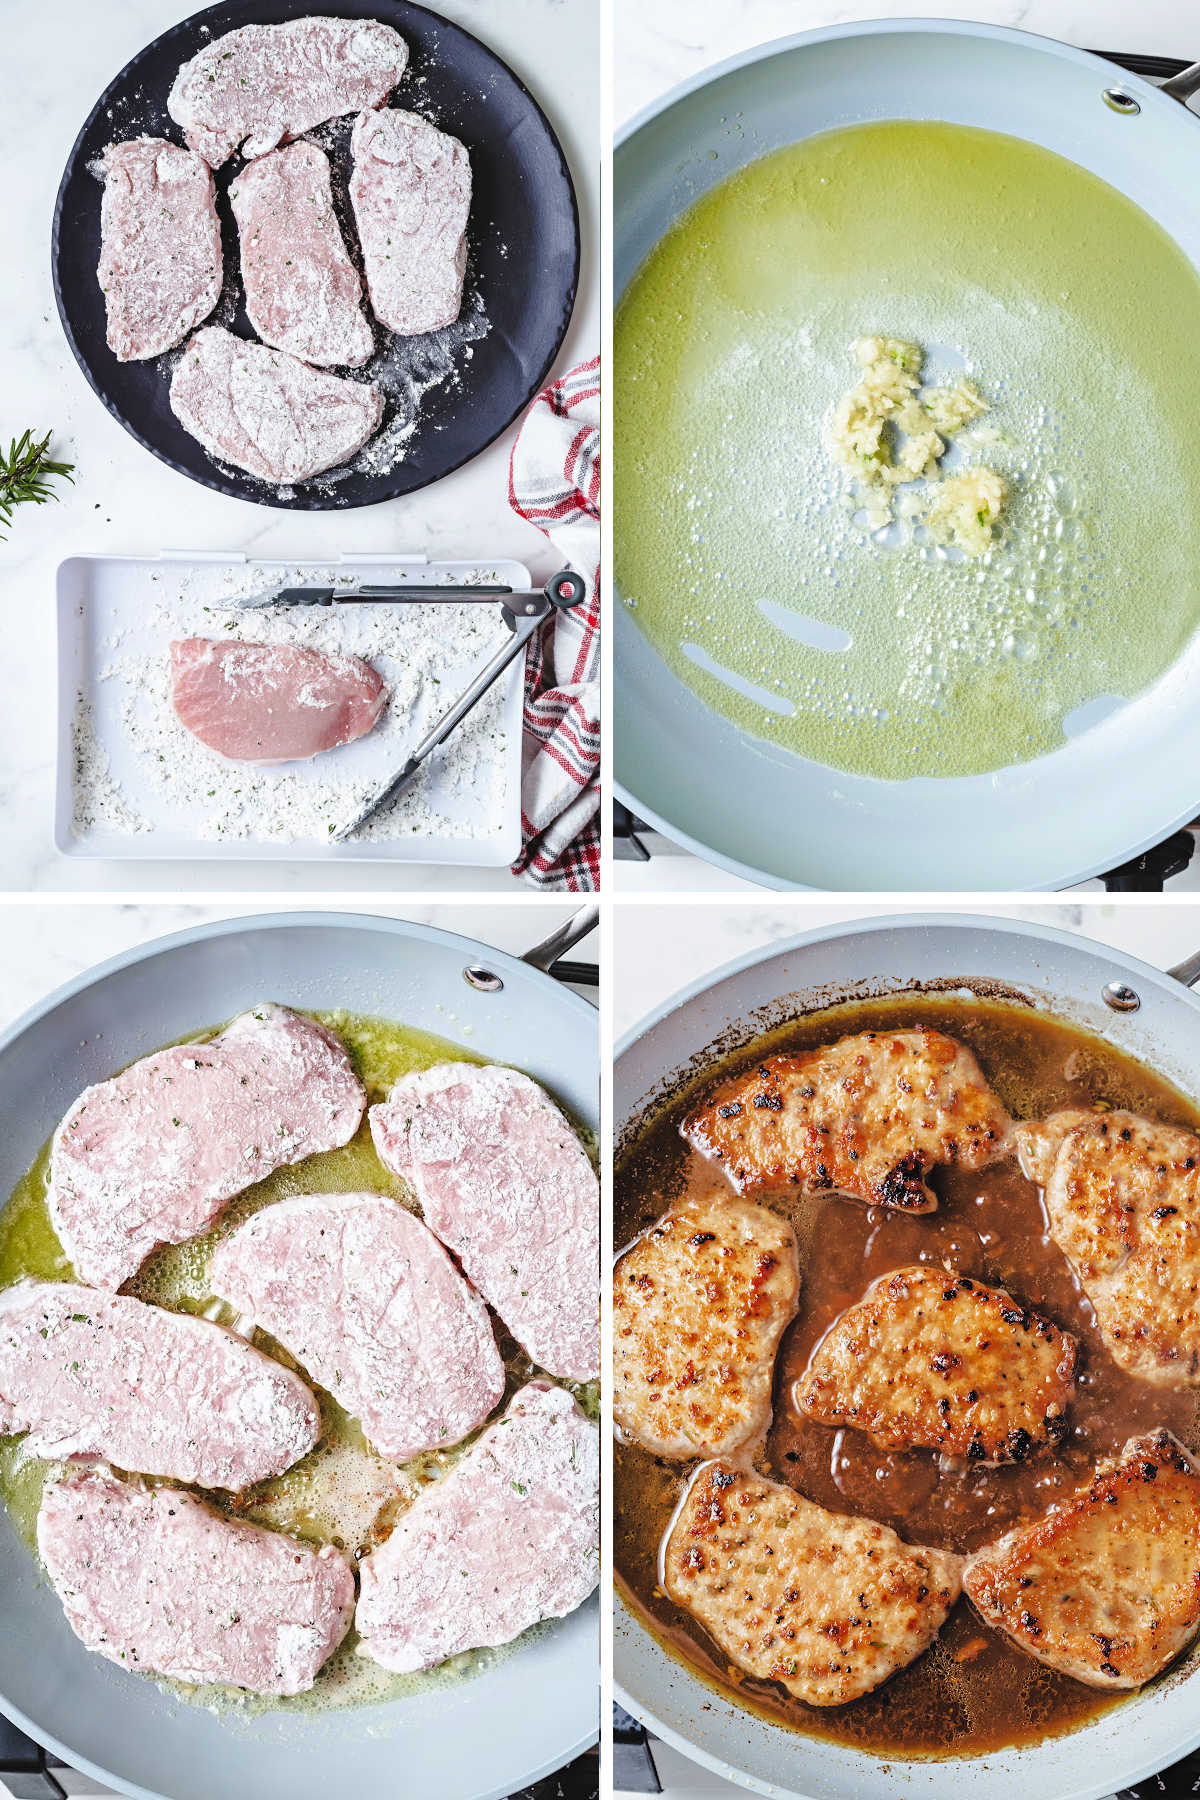 process steps for preparing balsamic pork chops: dredge chops in flour mixture; saute garlic in butter and olive oil; pay fry pork chops; simmer pork chops in balsamic sauce.